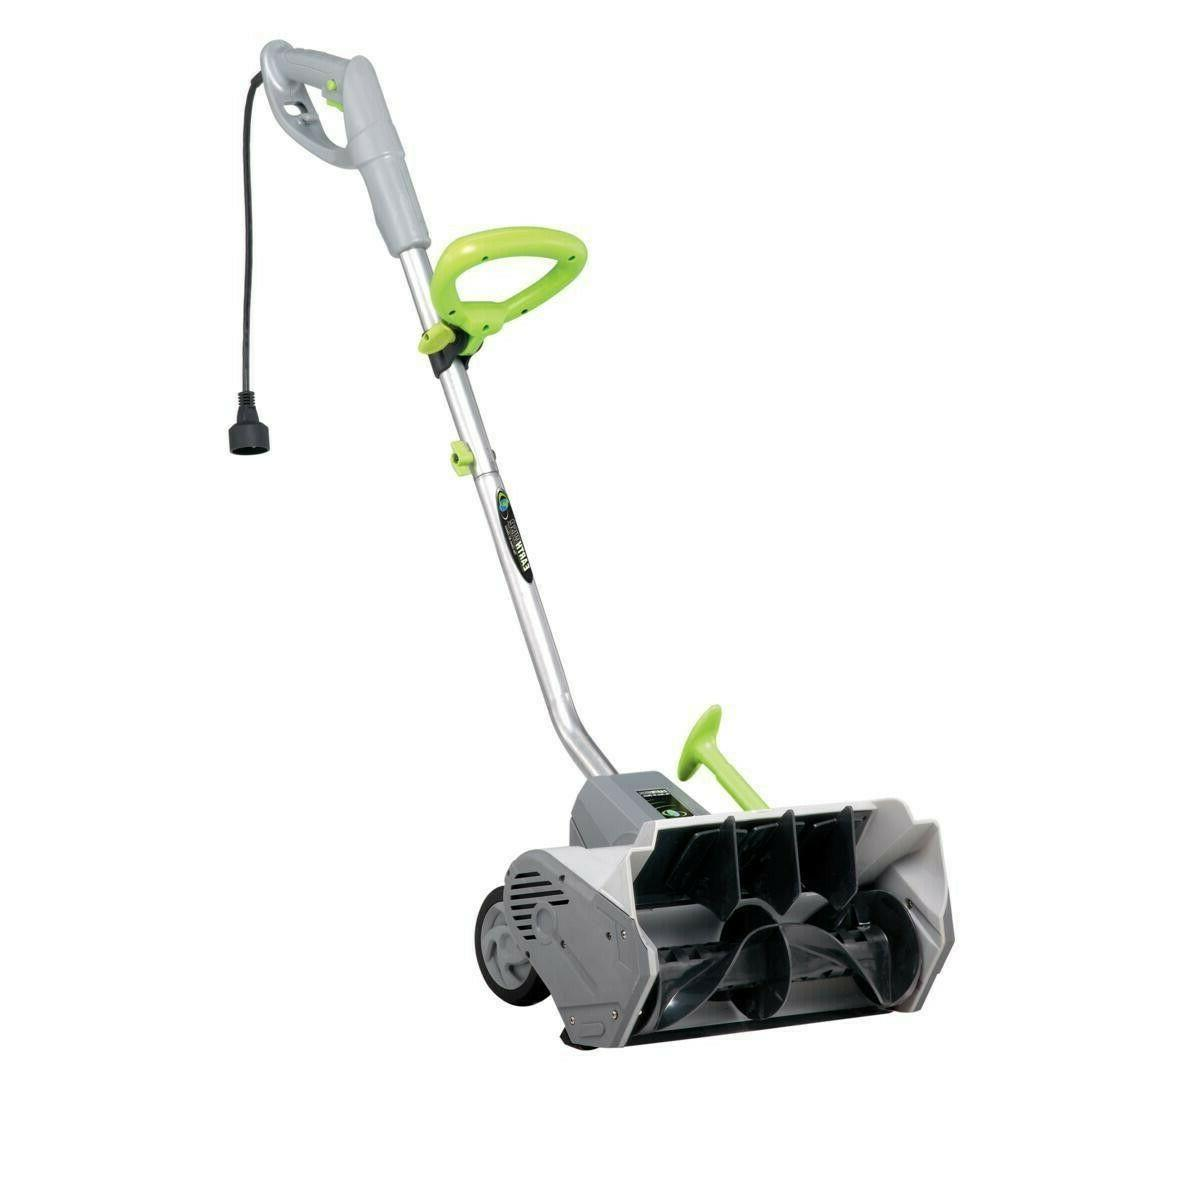 "Earthwise SN70016 Electric Corded 12 Amp Snow Shovel, 16"" Wi"